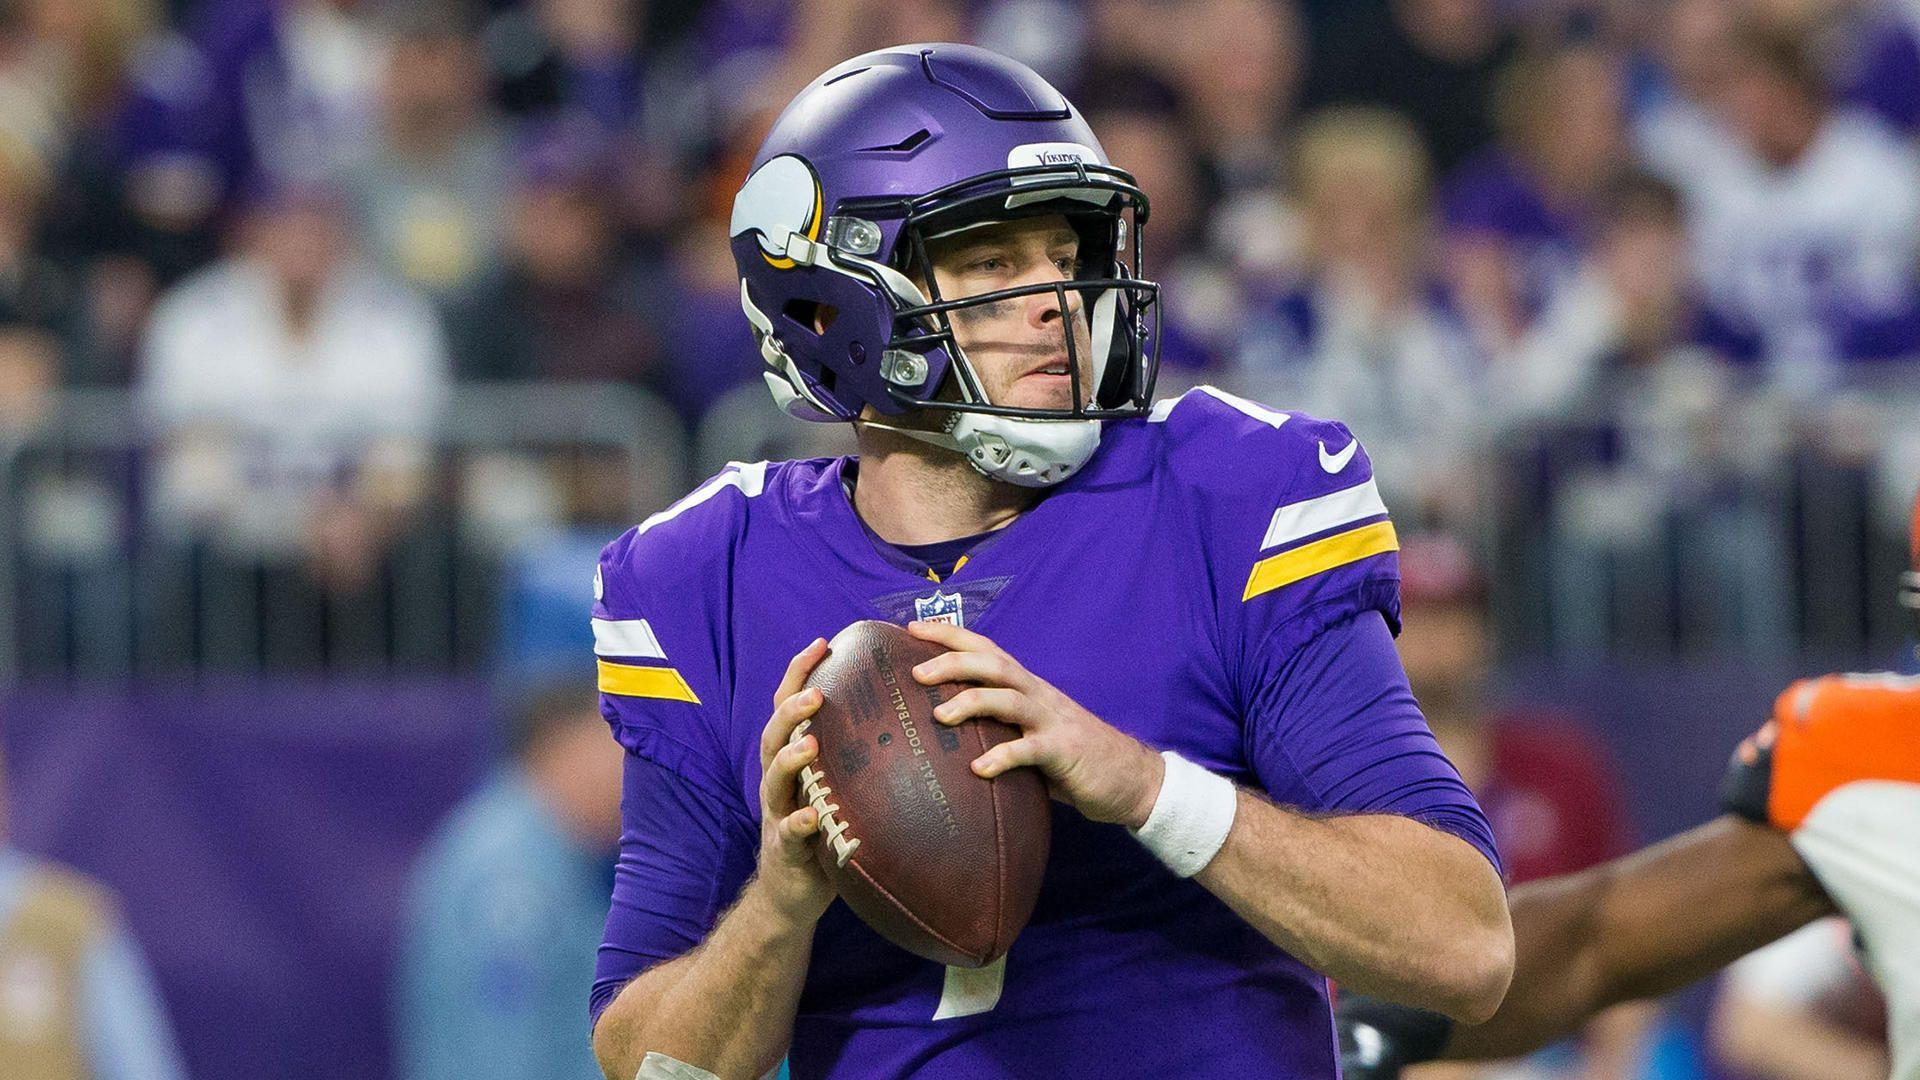 NFL Monday QB: Case Keenum's playoff confidence - CBSSports.com